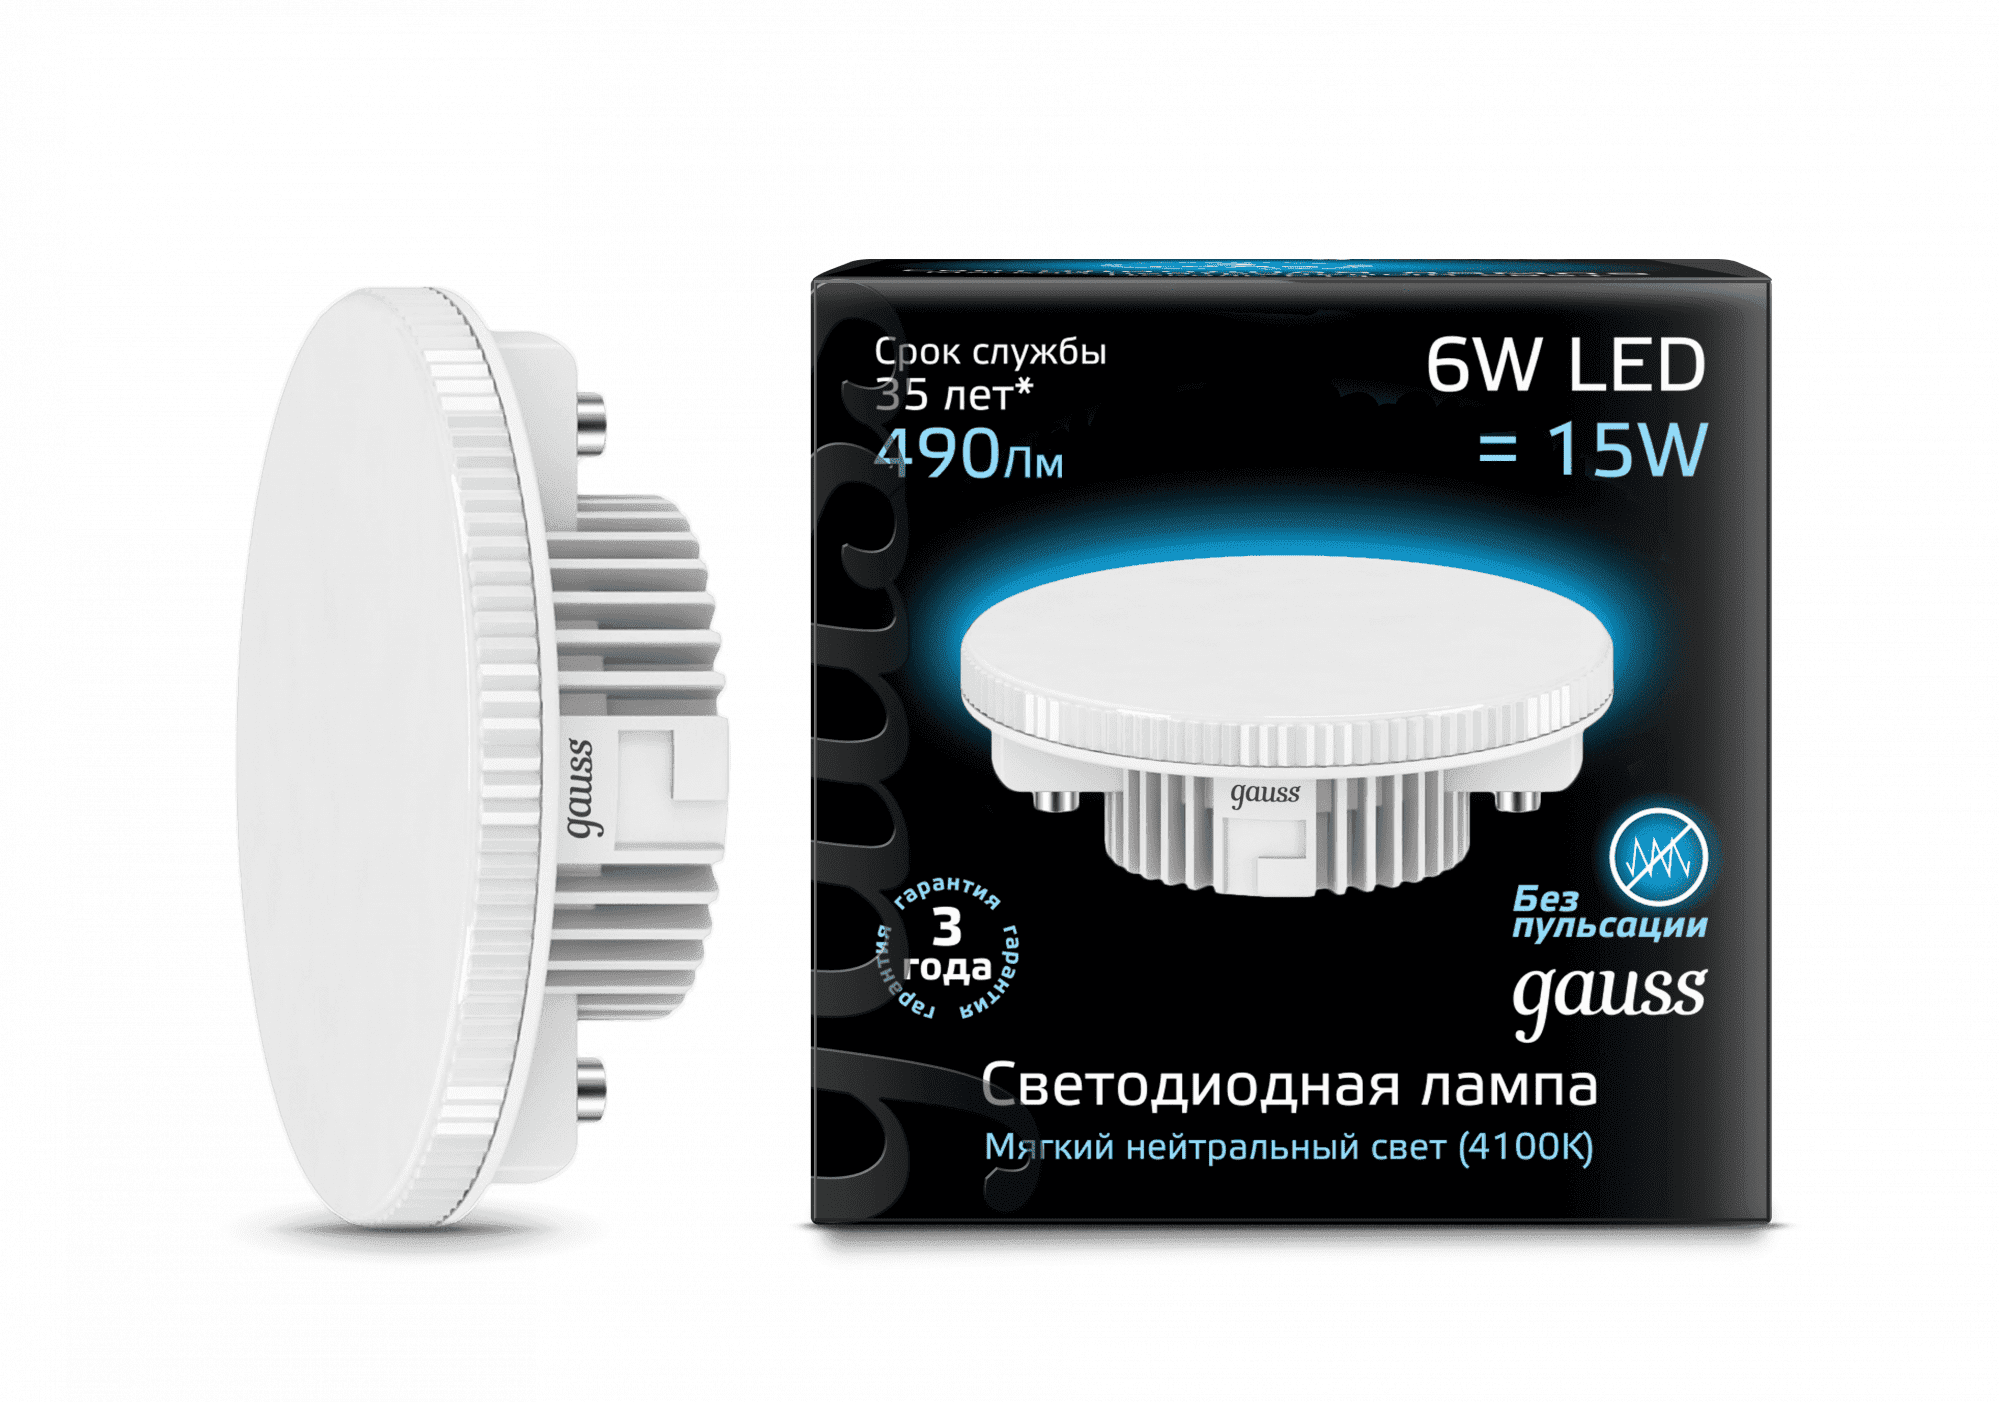 Gauss LED GX53 6W 4100K арт. 108008206